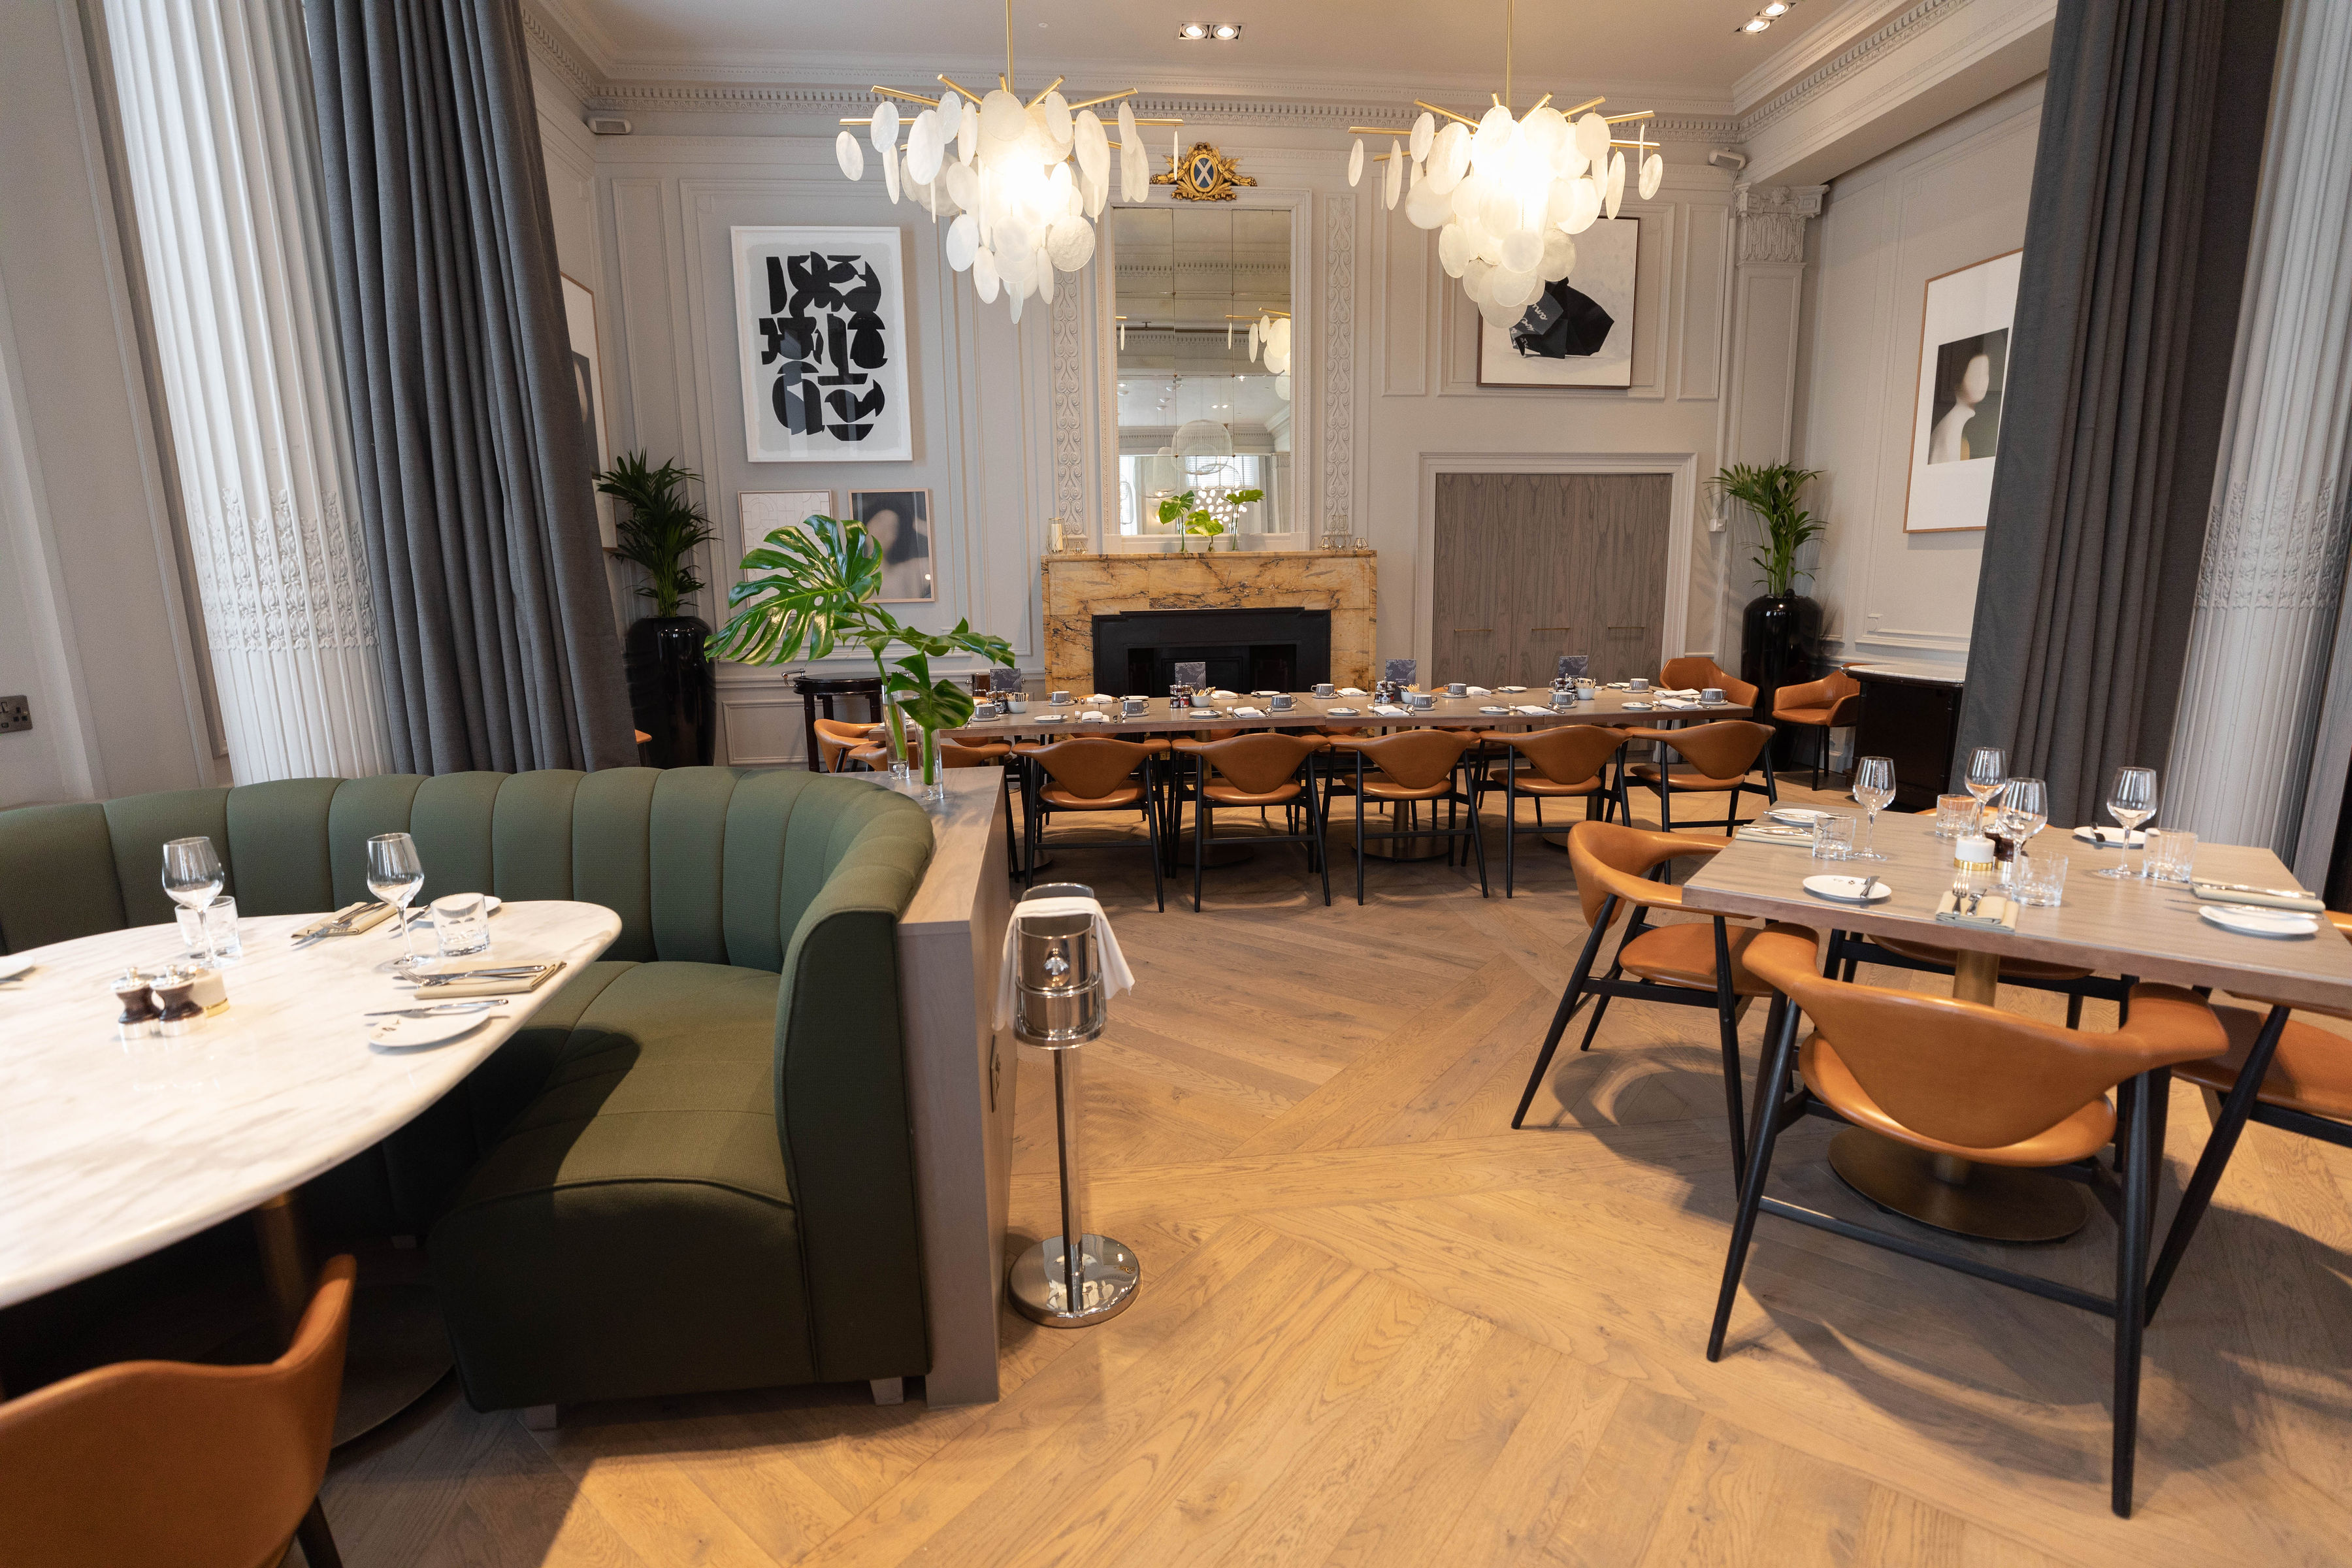 Luxury Hotels of the World Kimpton Blythswood Square in Glasgow, Scotland, United Kingdom Luxury Hotel